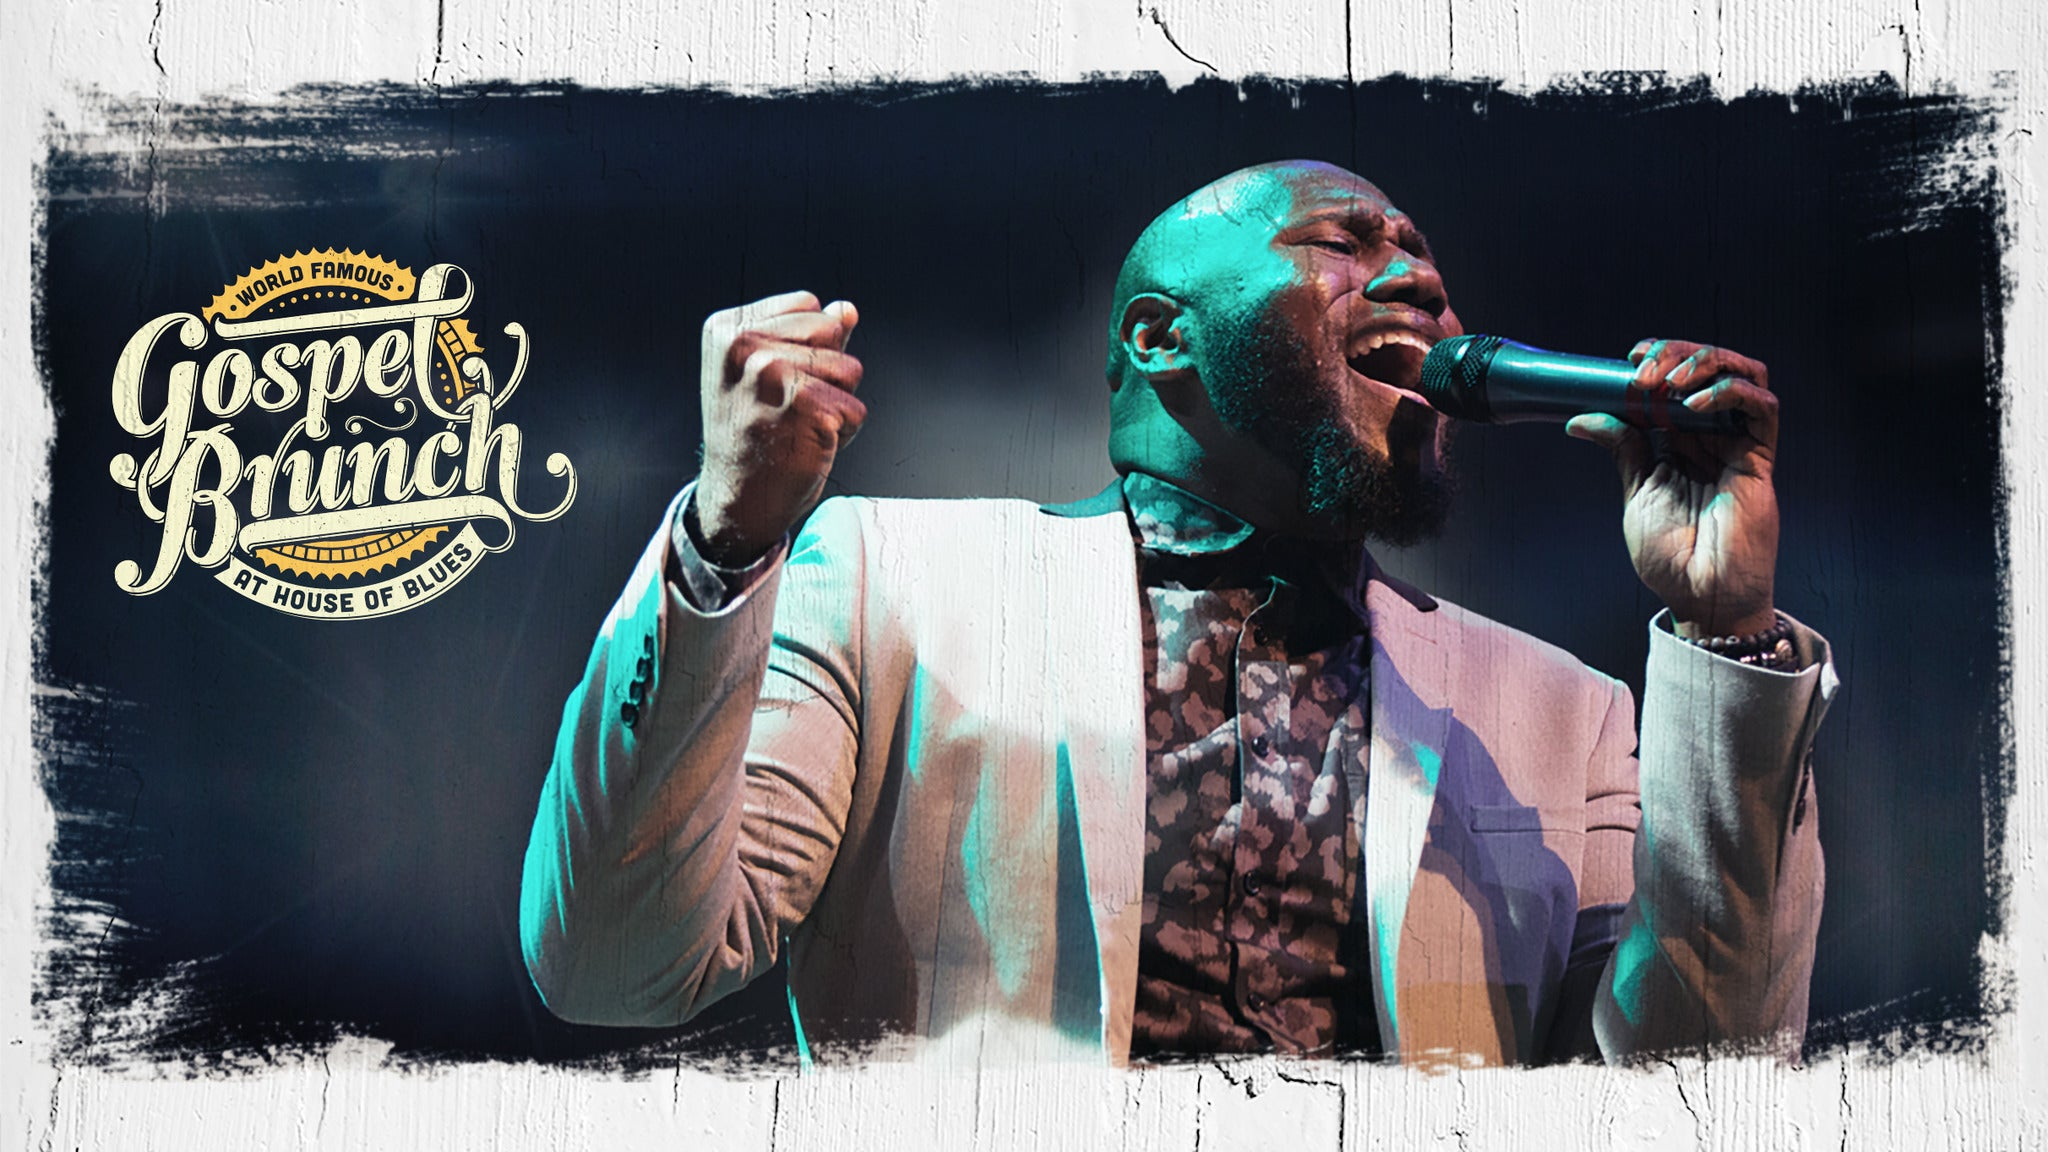 World Famous Gospel Brunch at House of Blues (ANA) - Anaheim, CA 92802